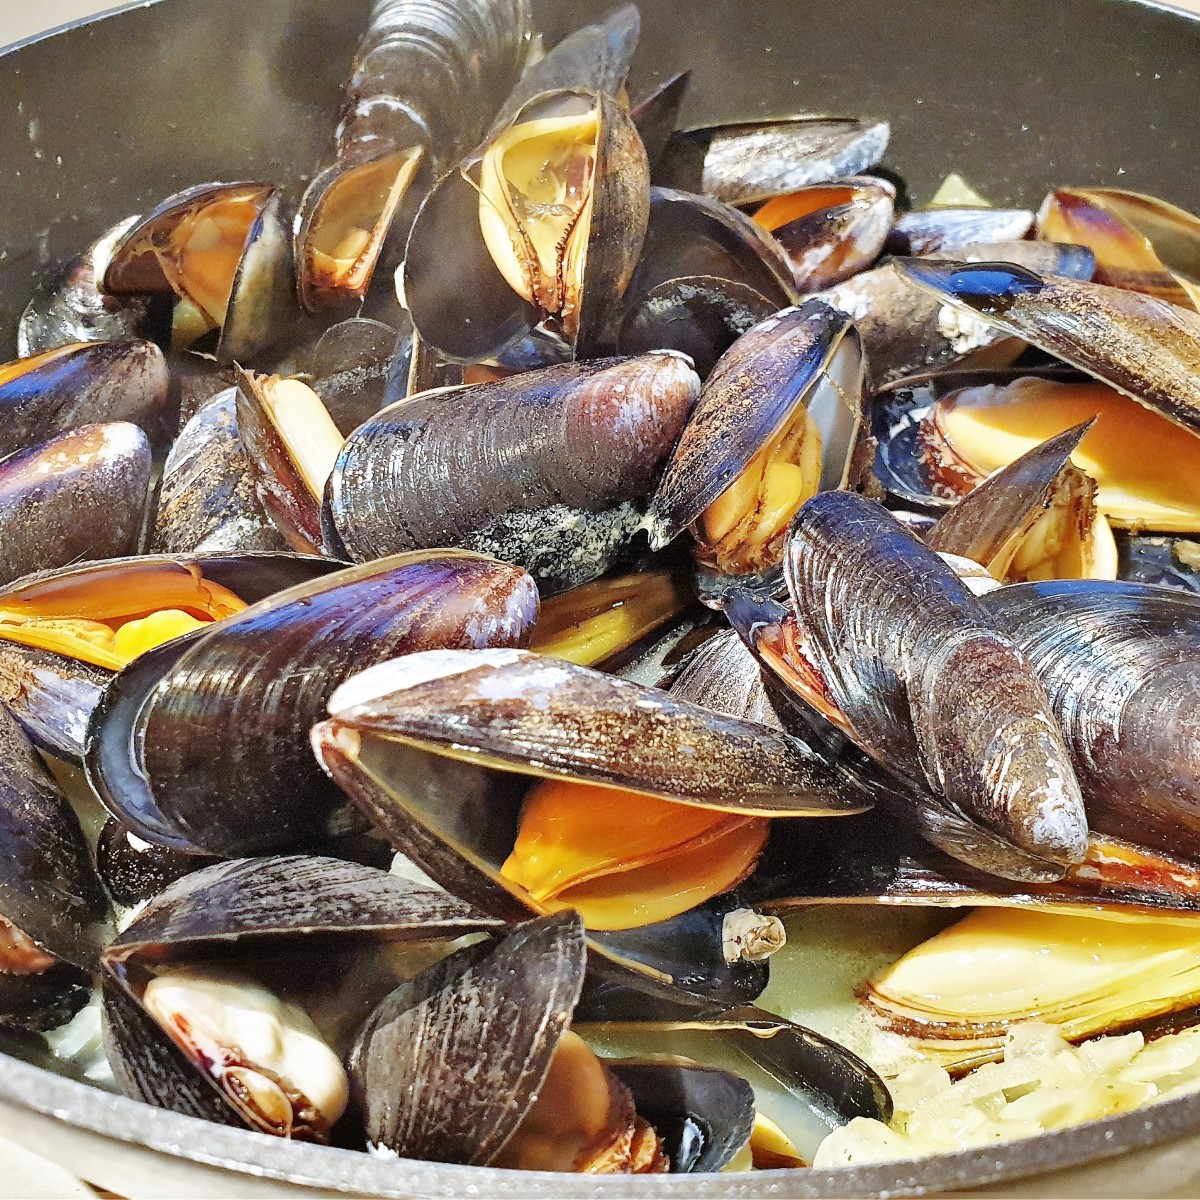 A pan of freshly cooked mussels, all opened to reveal the delicacy inside.